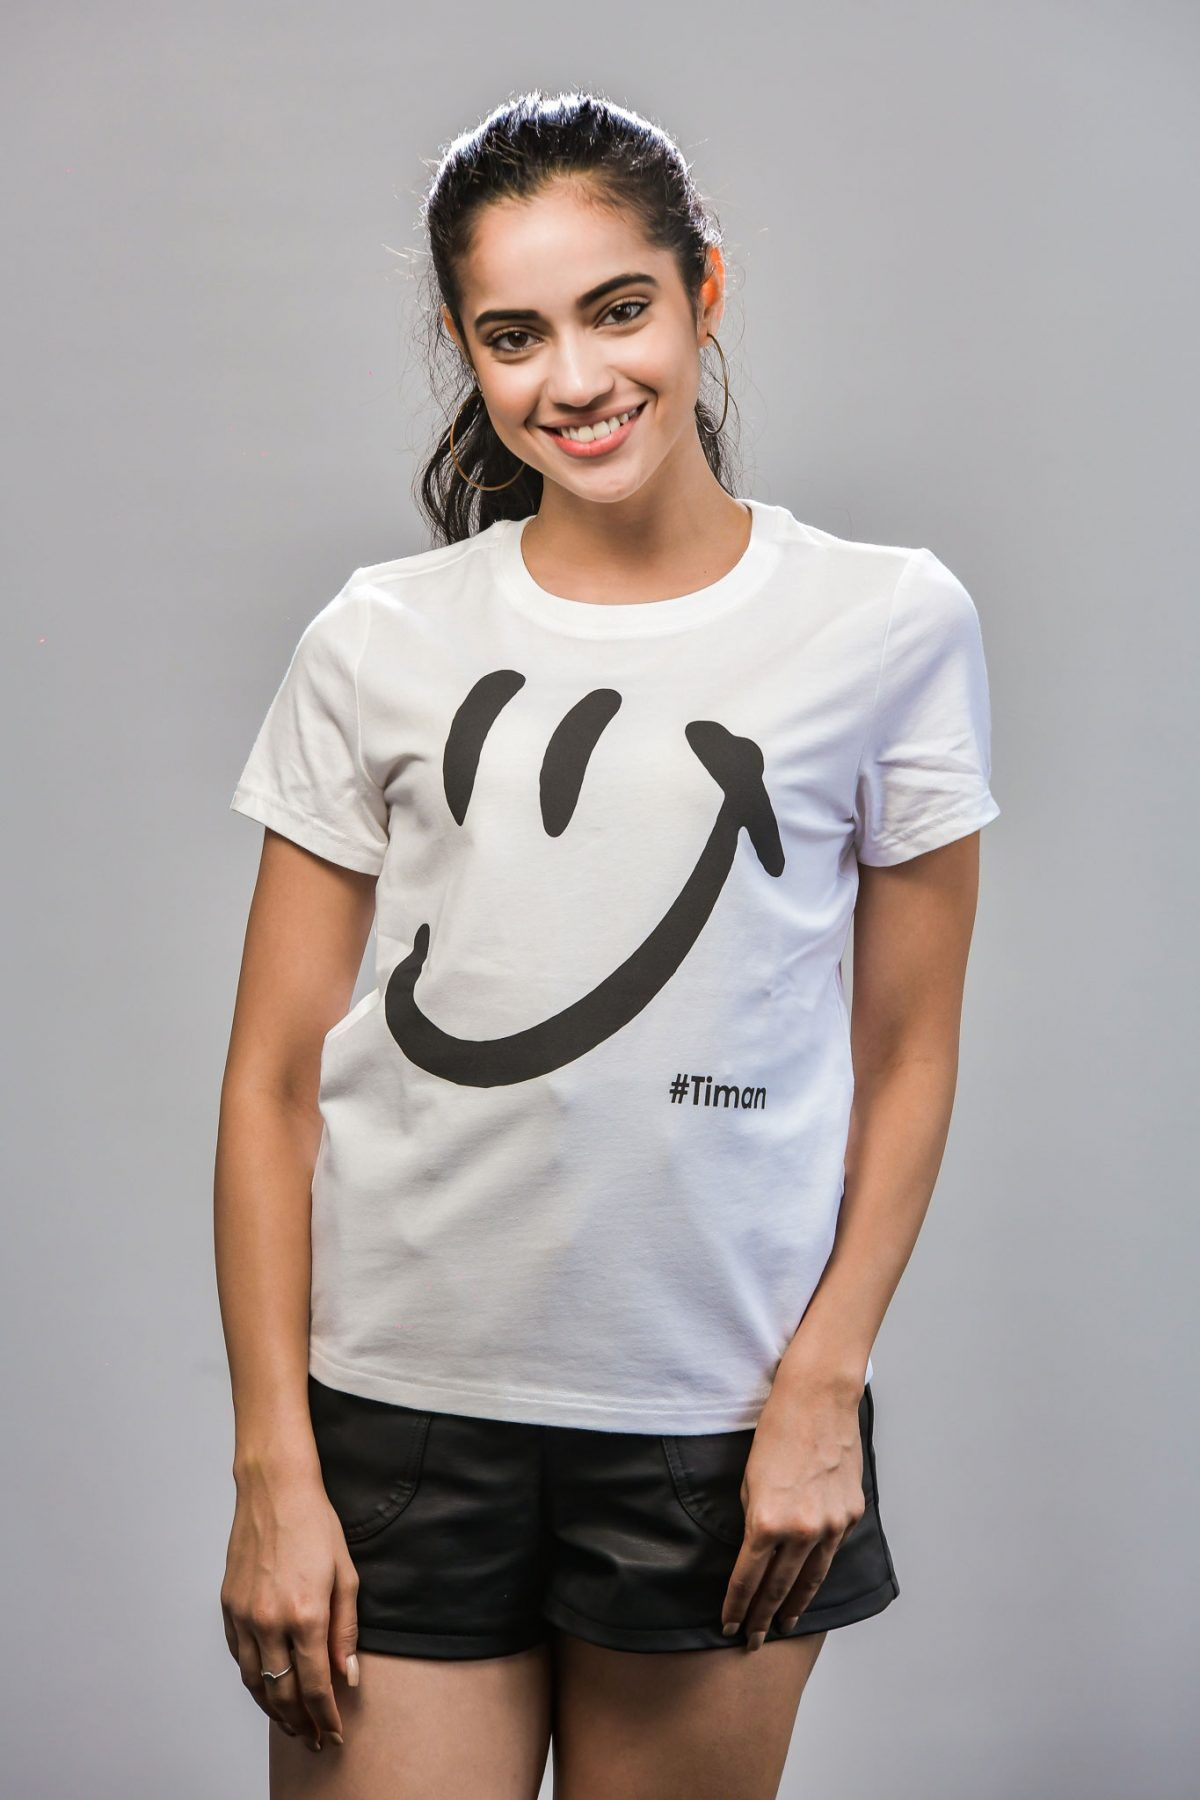 Women's Black Luna White T-Shirt Model 1